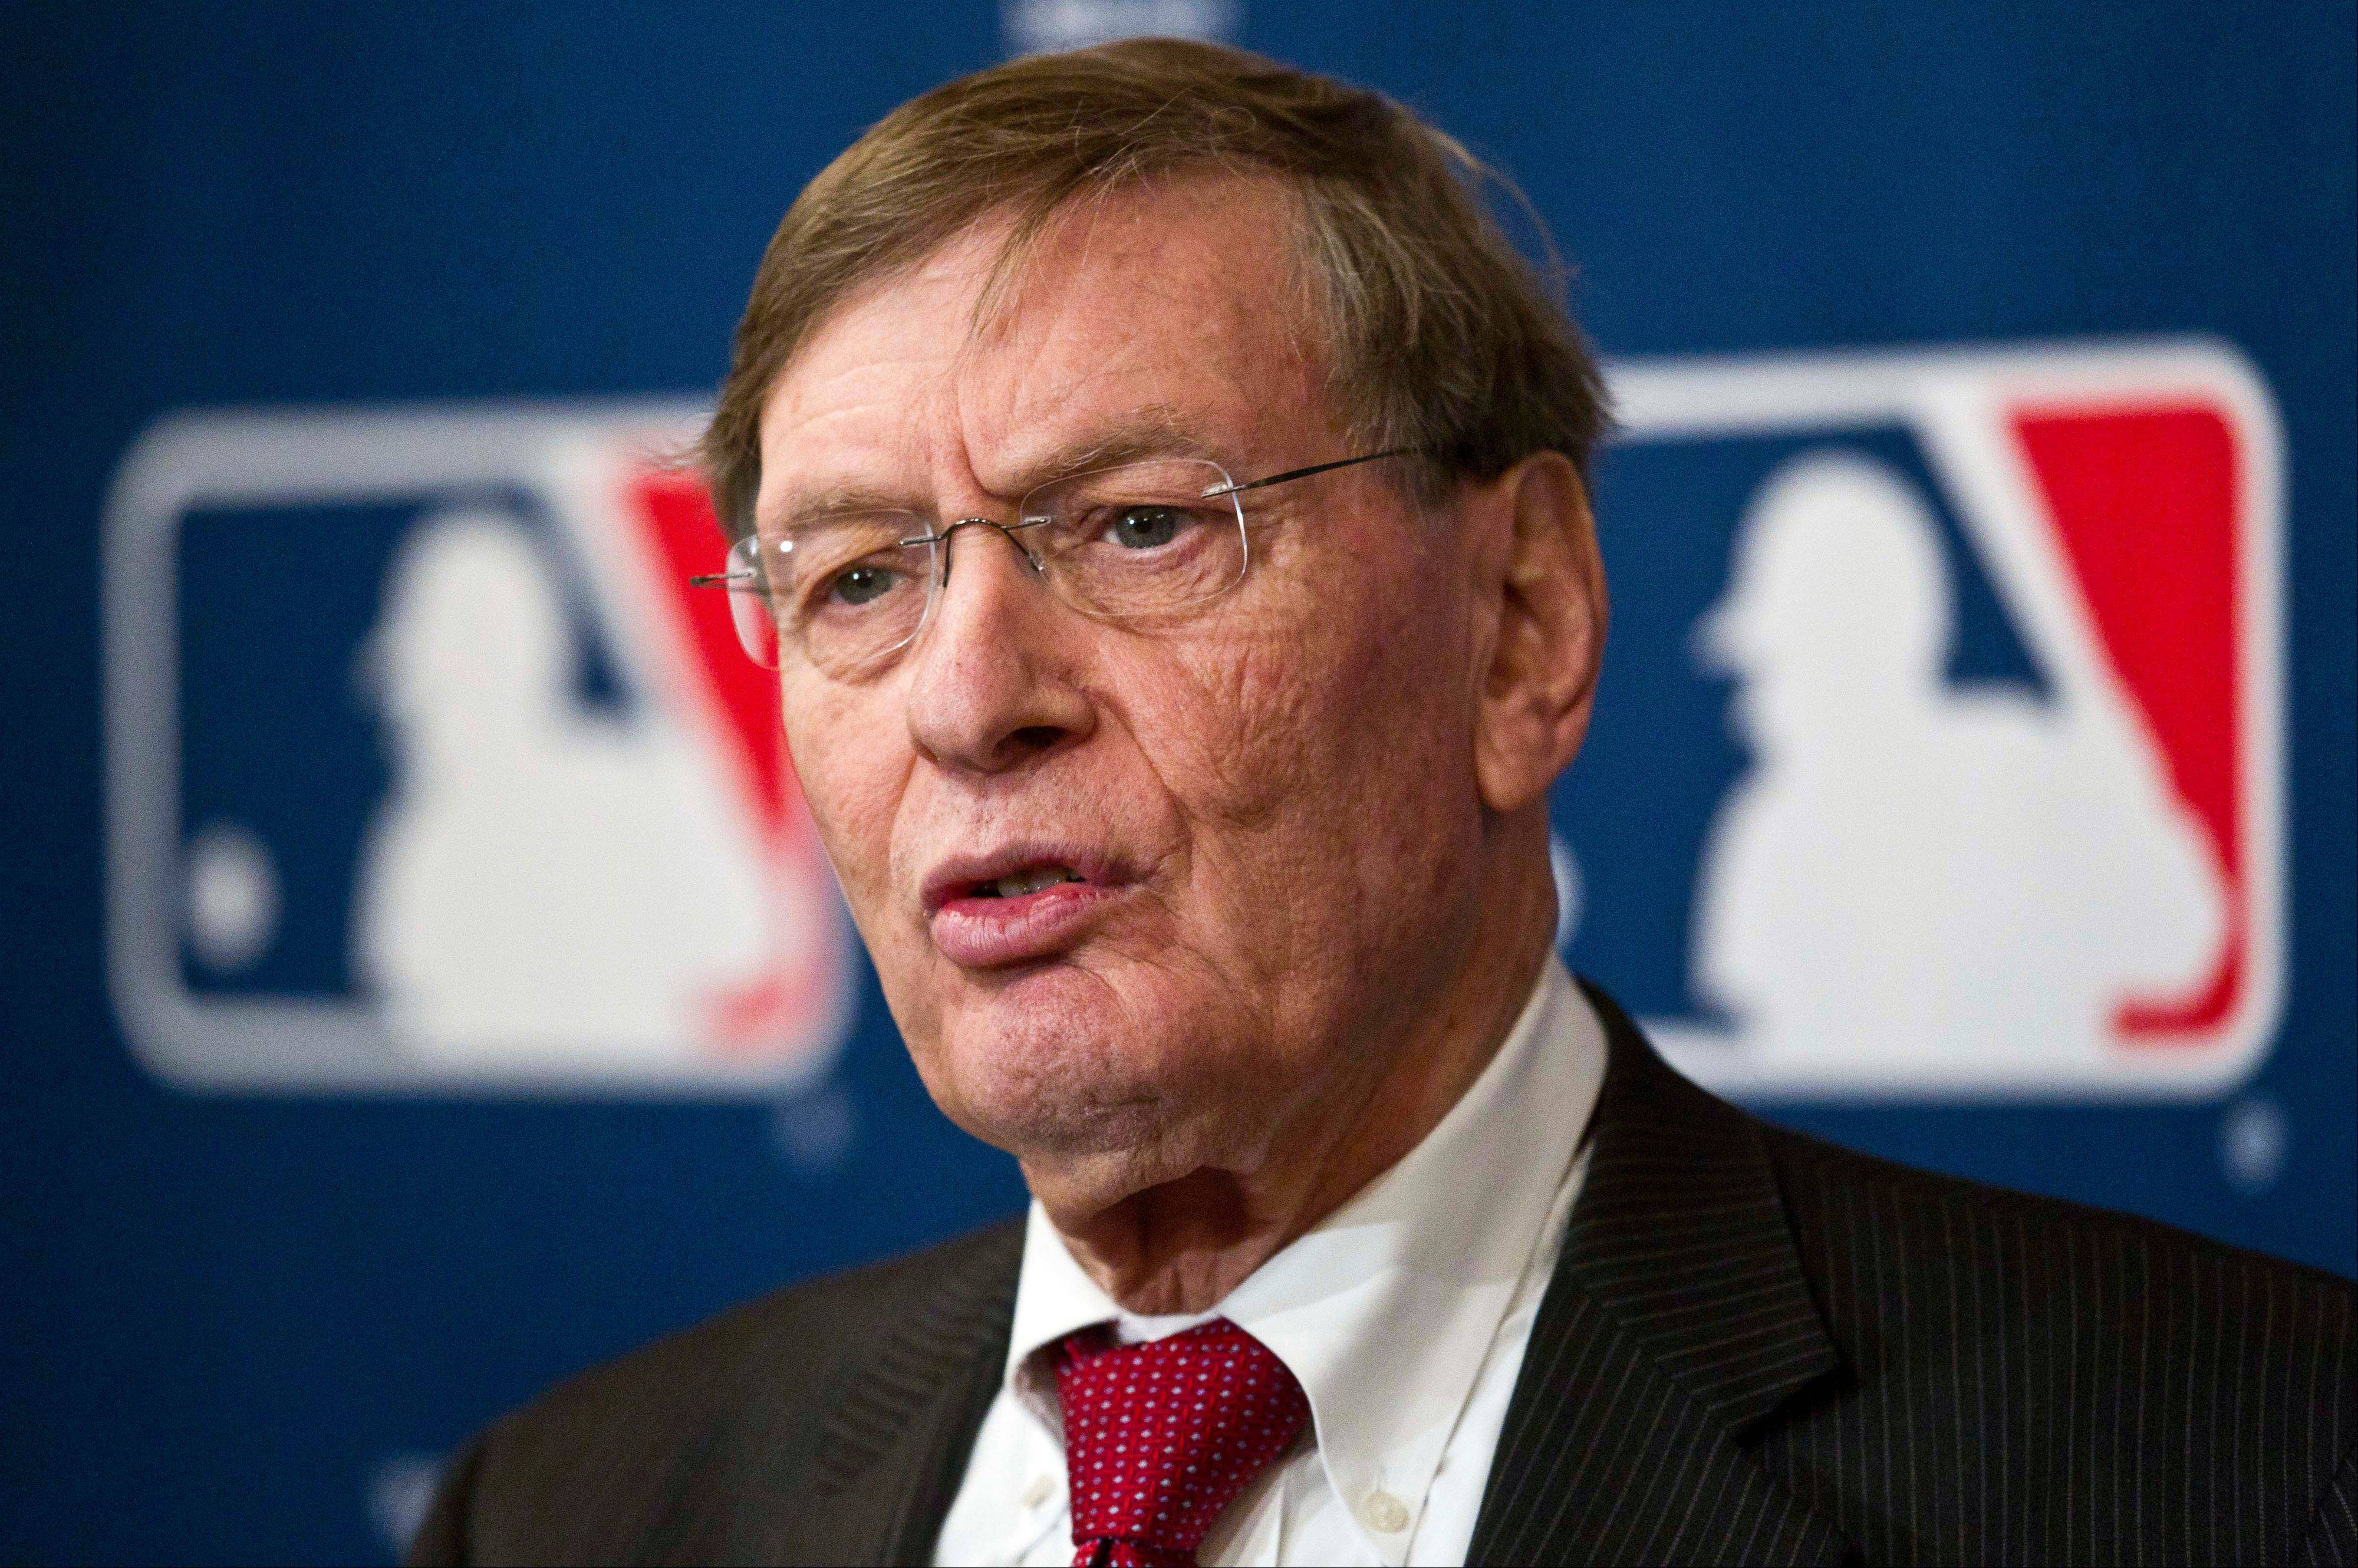 Major League Baseball commissioner Bud Selig has said he doesn't plan to interfere if Melky Cabrera wins the NL batting title while serving his 50-game suspension for a positive drug test.